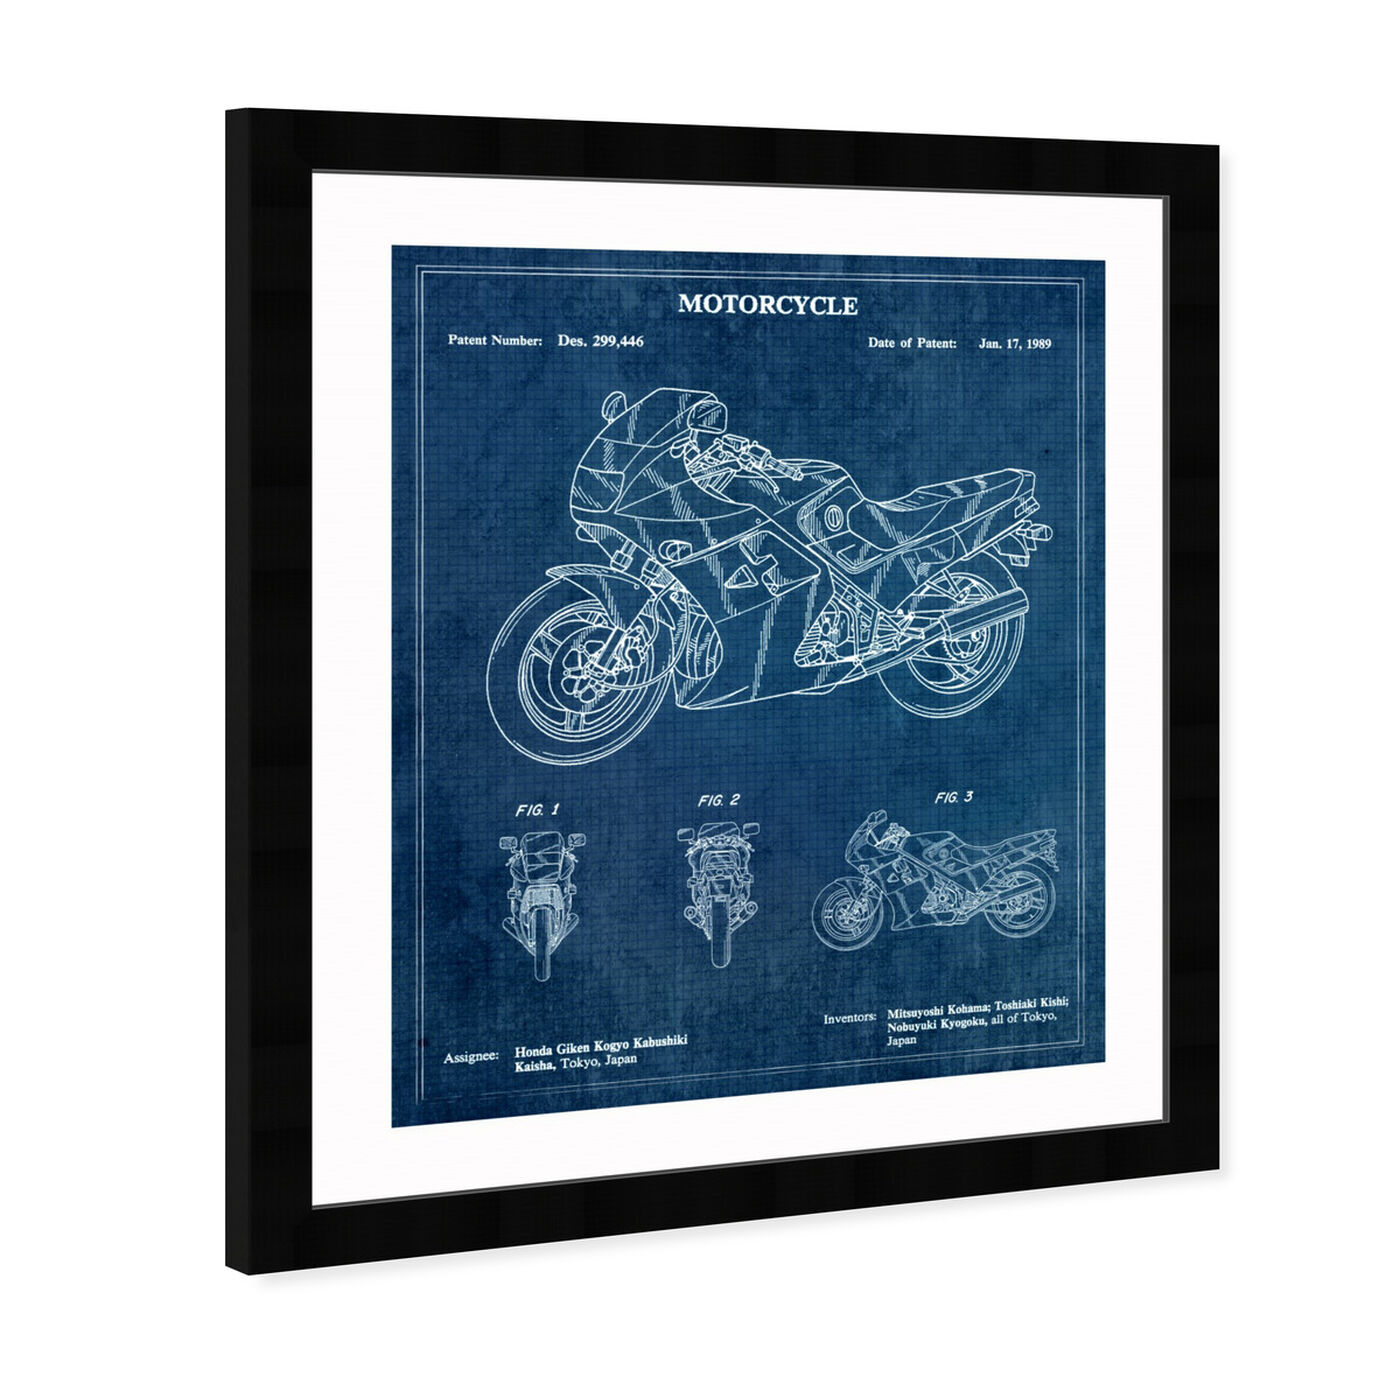 Angled view of Motorcycle 1989 featuring transportation and motorcycles art.